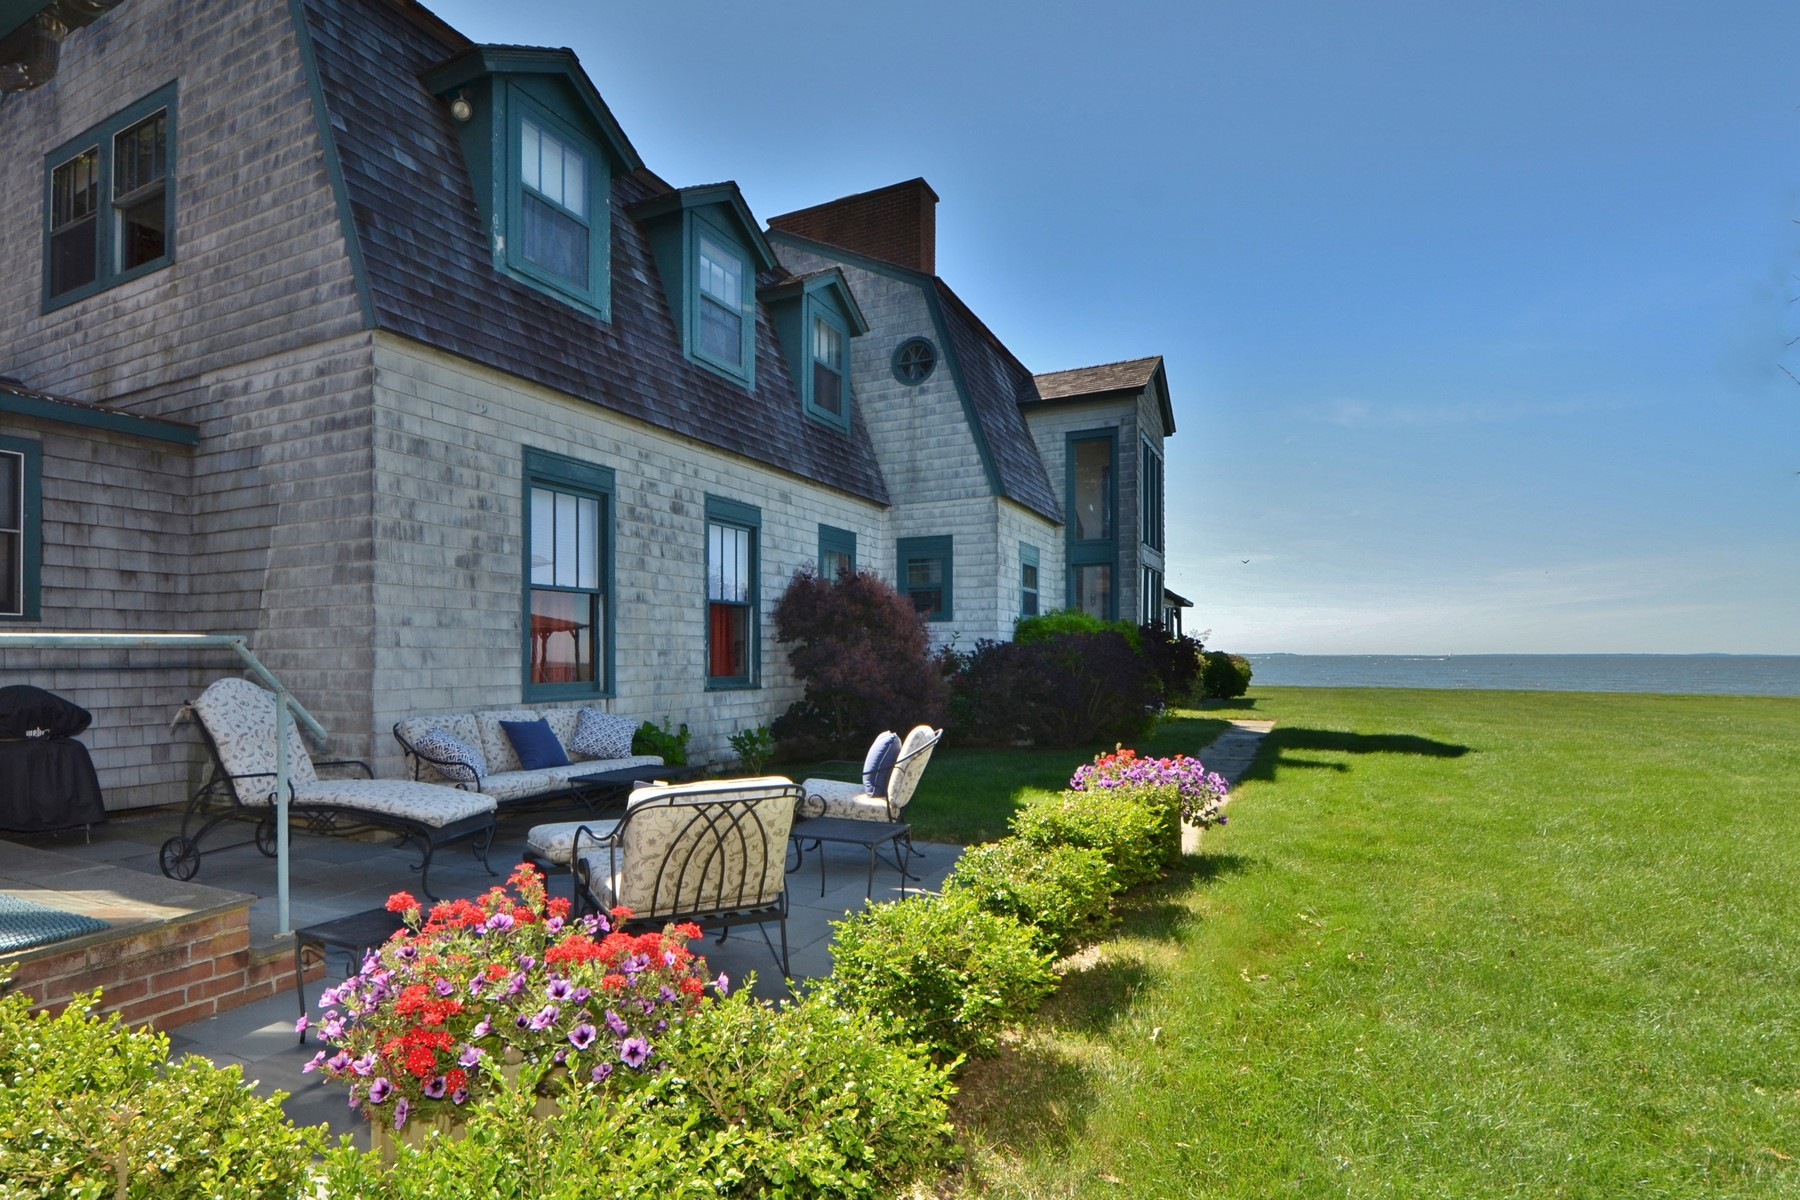 Single Family Homes for Sale at Beautiful, Classic, Waterfront Fenwick Home 25 Pettipaug Avenue Old Saybrook, Connecticut 06475 United States